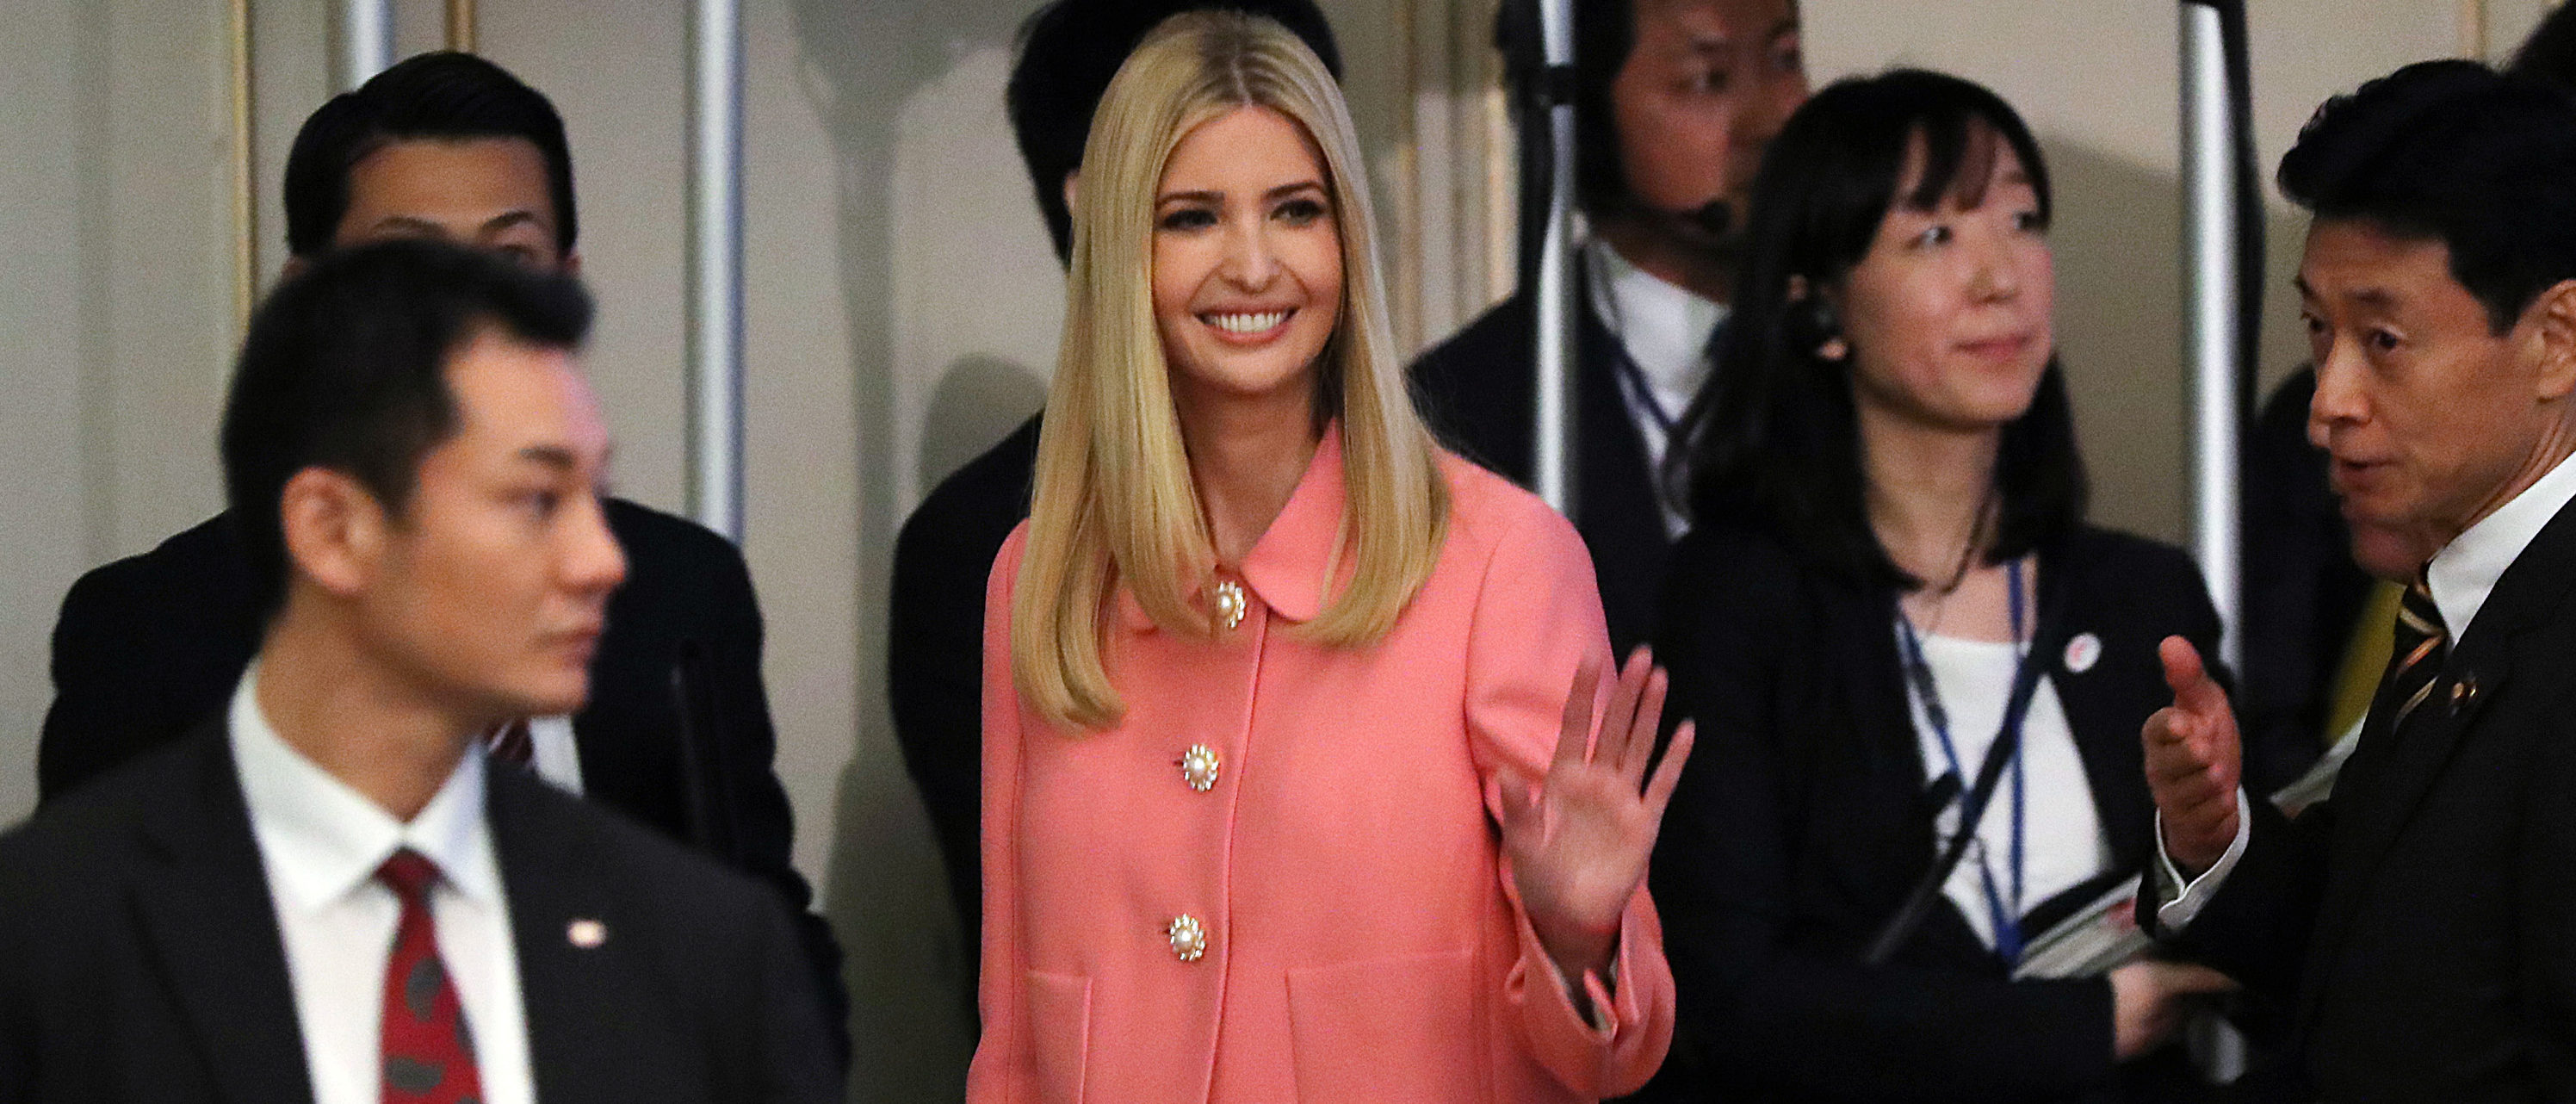 Ivanka Trump, the daughter and assistant to President Donald Trump, waves after delivering a speech at World Assembly for Women: WAW! 2017 conference Friday, Nov. 3, 2017 in Tokyo. REUTERS/Eugene Hoshiko/Pool